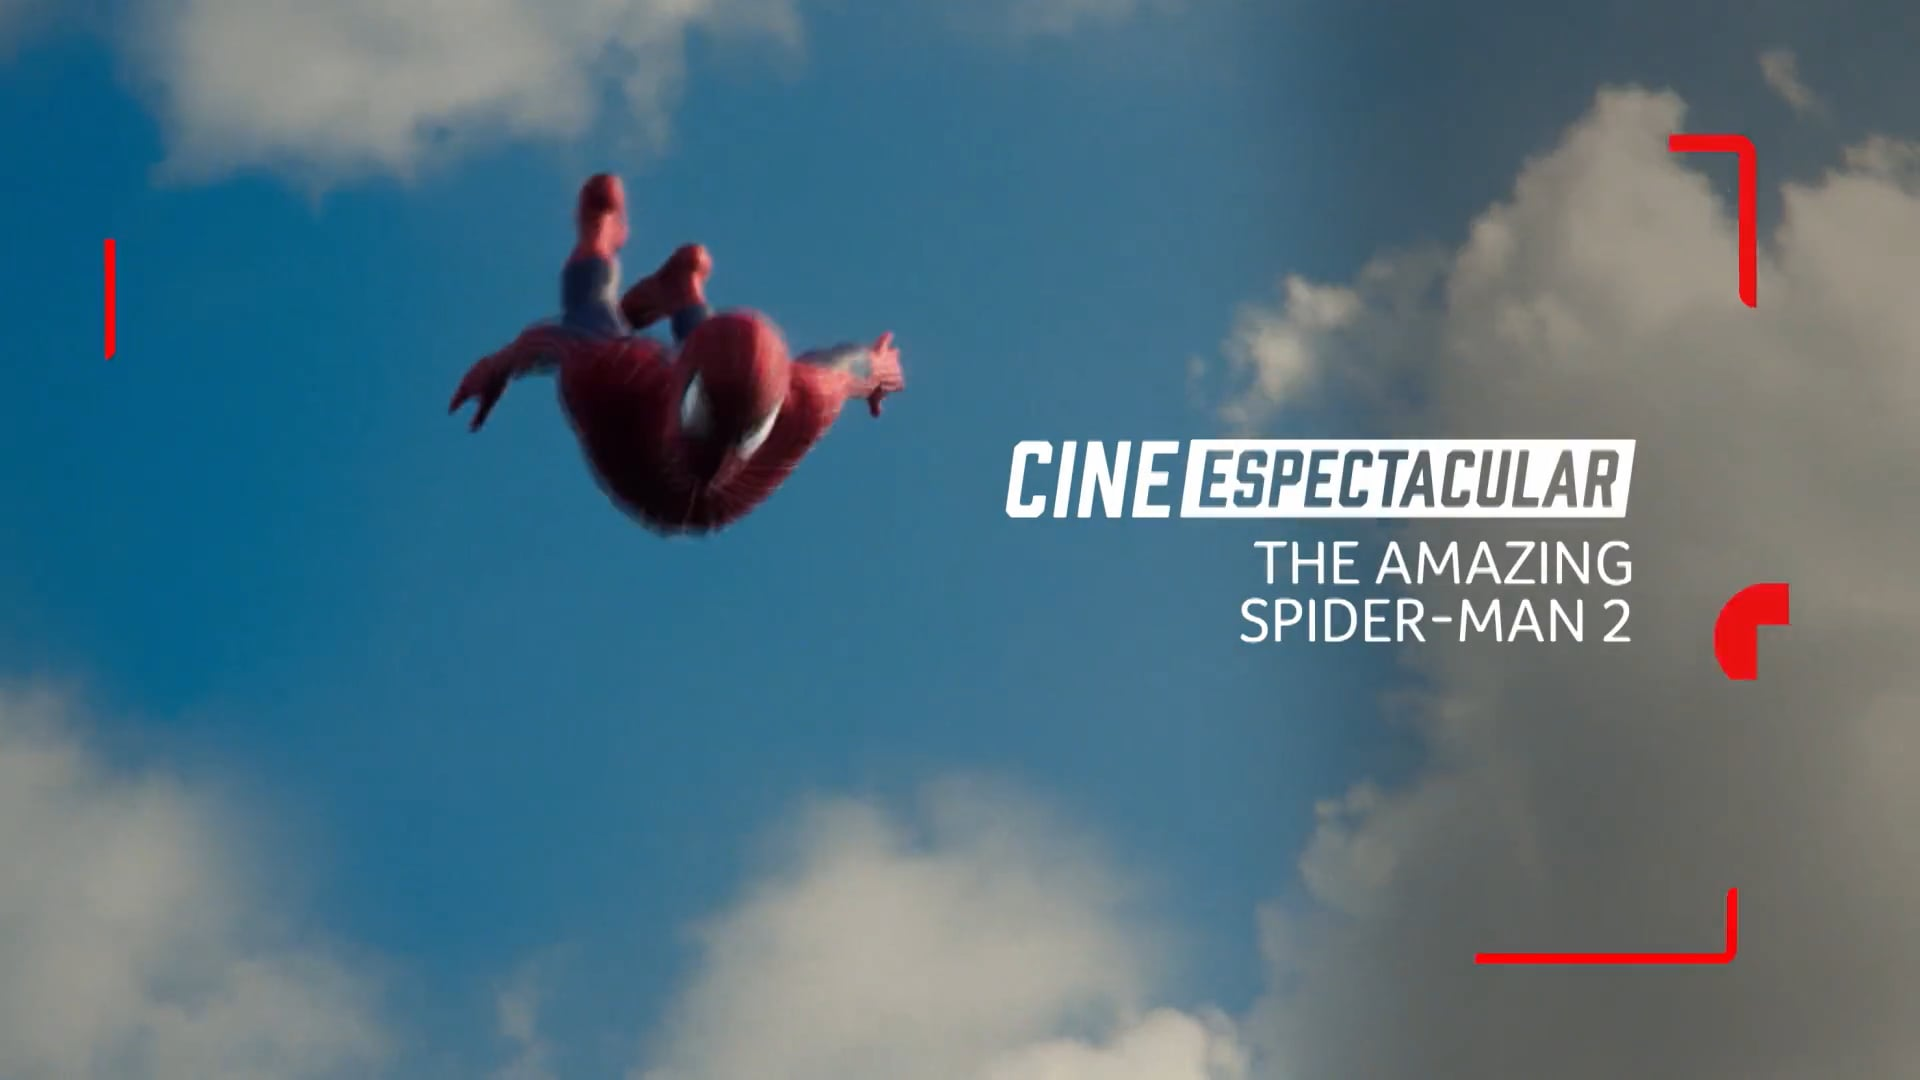 CINE ESPECTACULAR: THE AMAZING SPIDER-MAN 2 – TUNE-IN